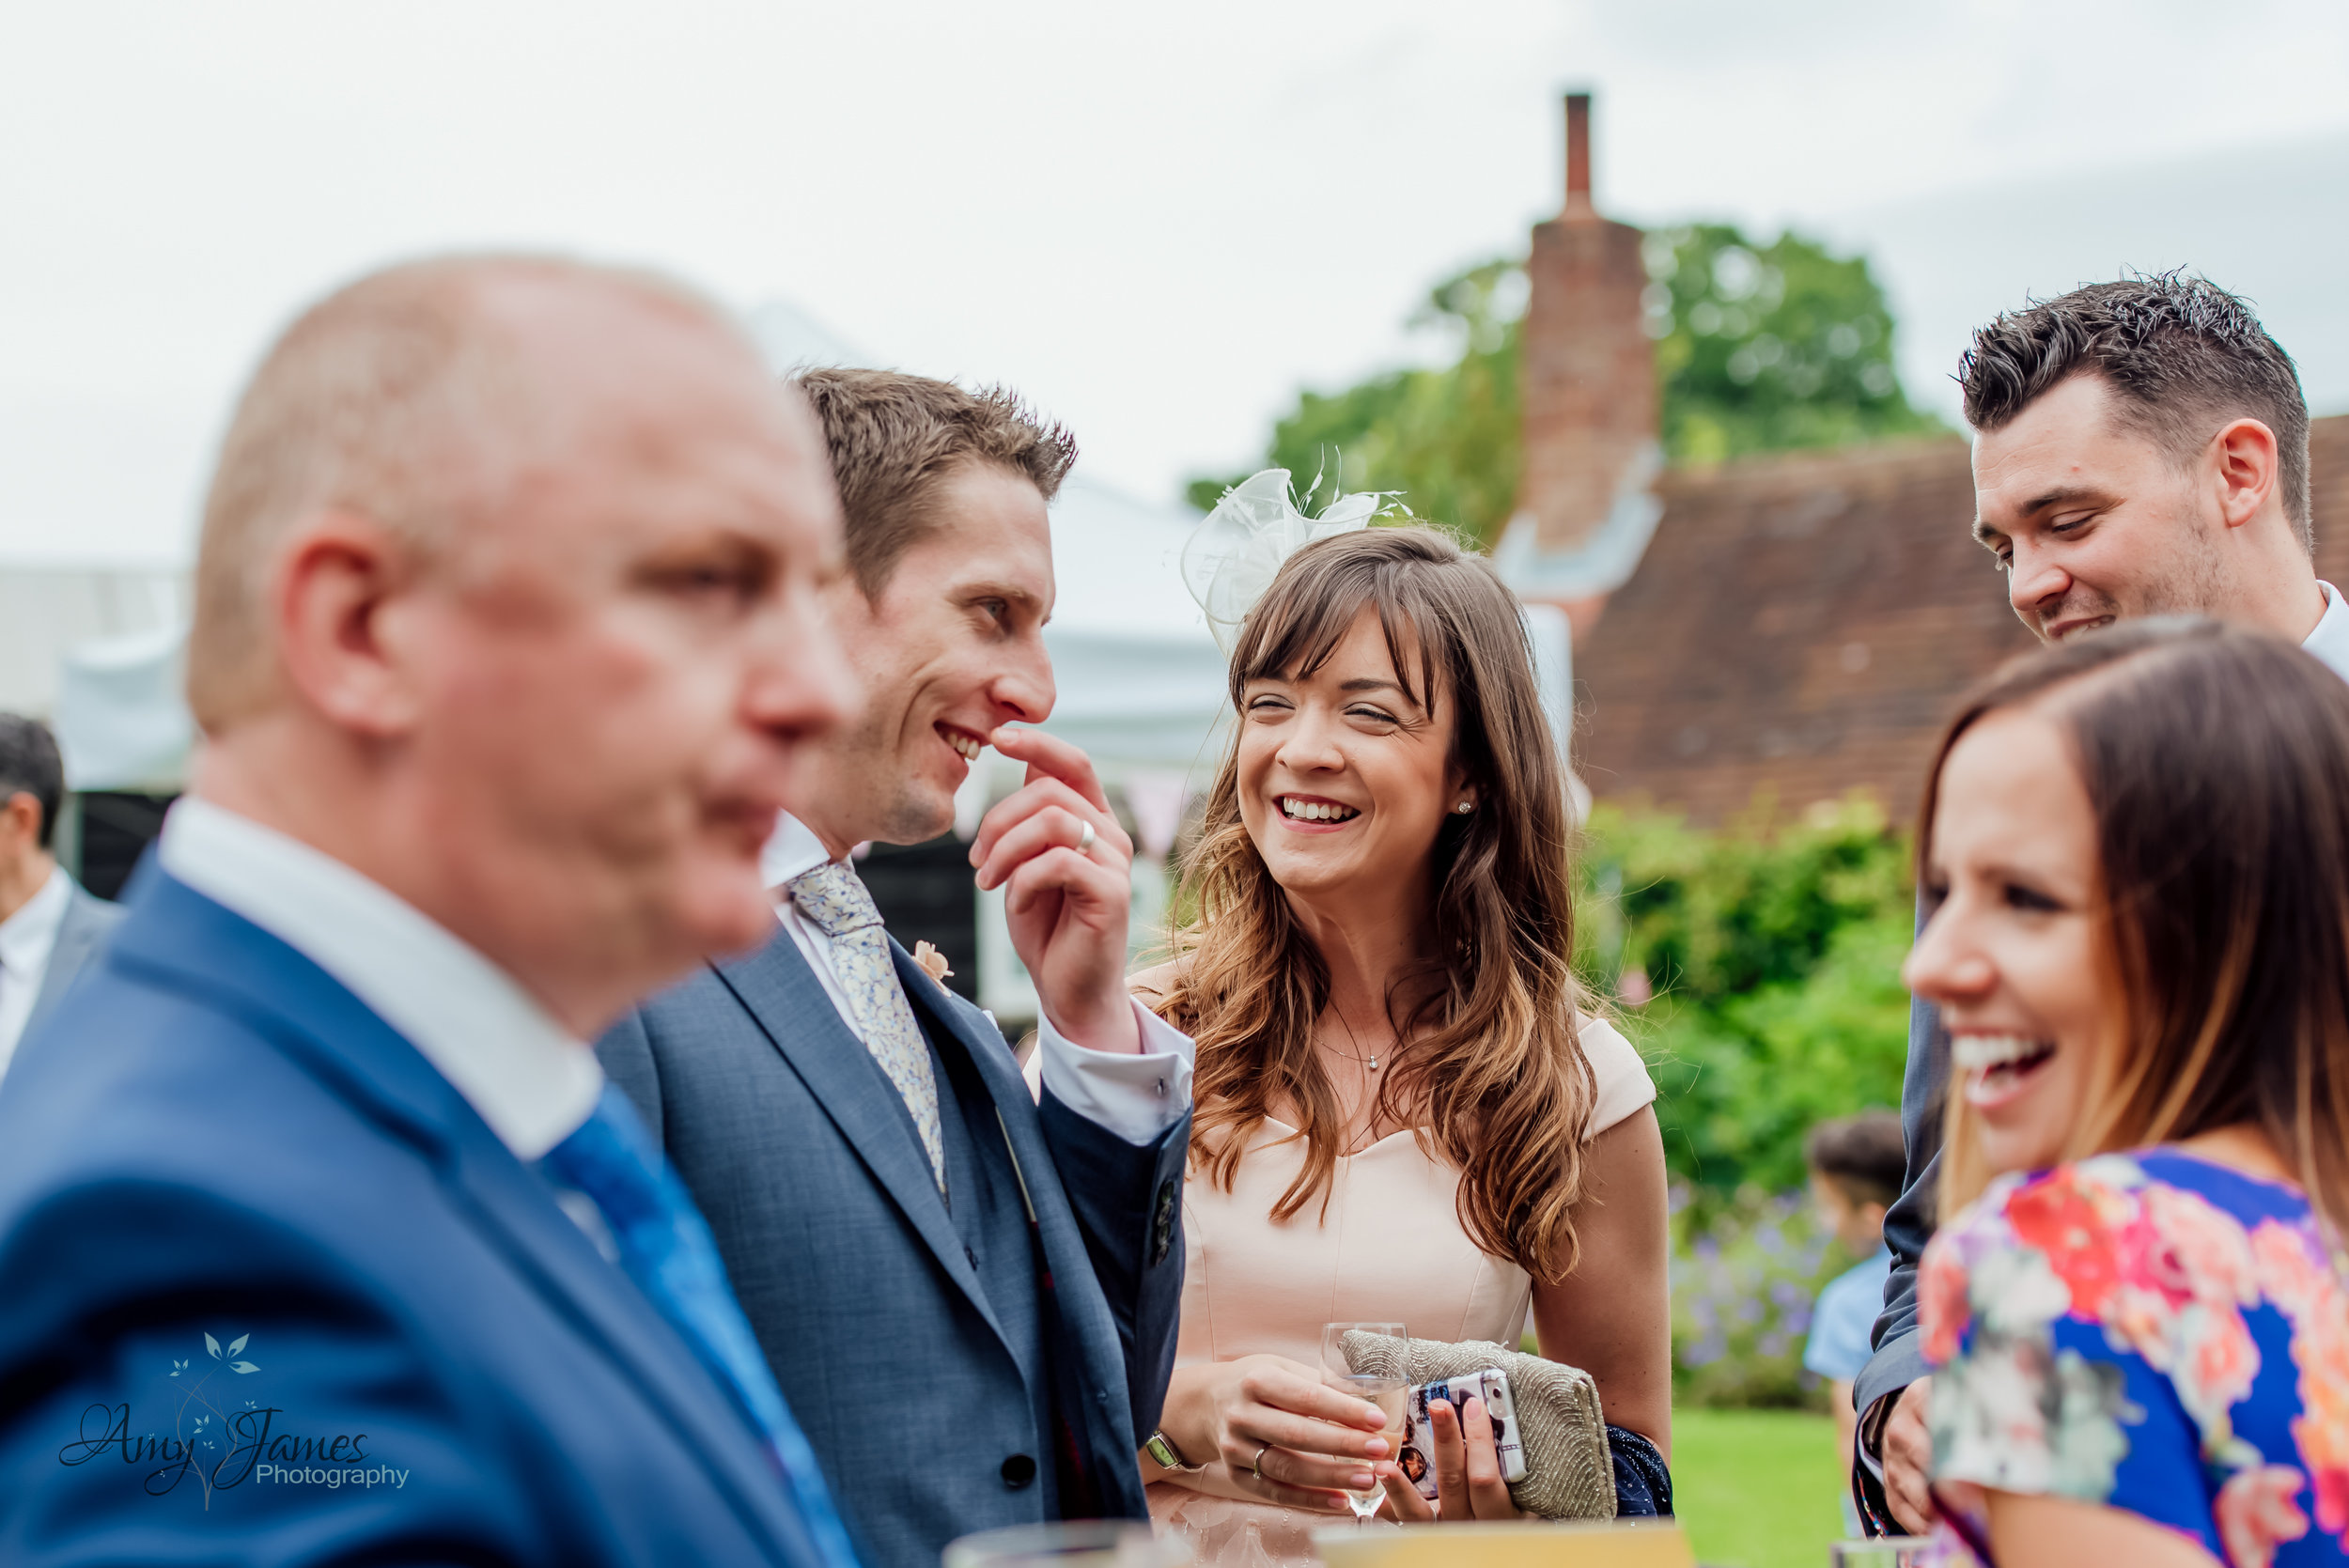 Amy James photography Hampshire Wedding photographer - Outdoor garden wedding ceremony at Taplins Place